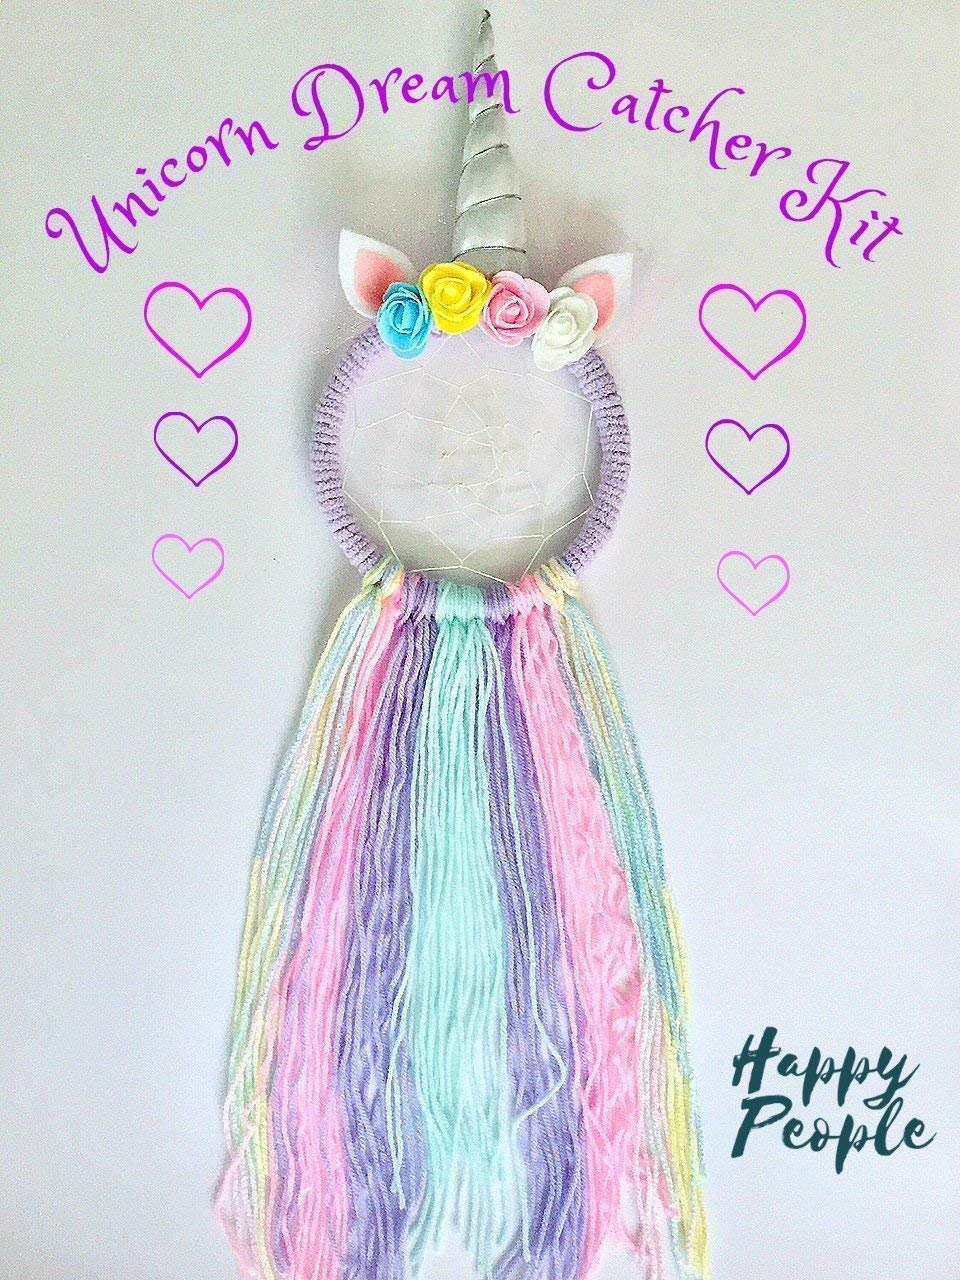 Full Size Make Your Own Unicorn Dream Catcher Kit Kids Craft Gifts for girls 3